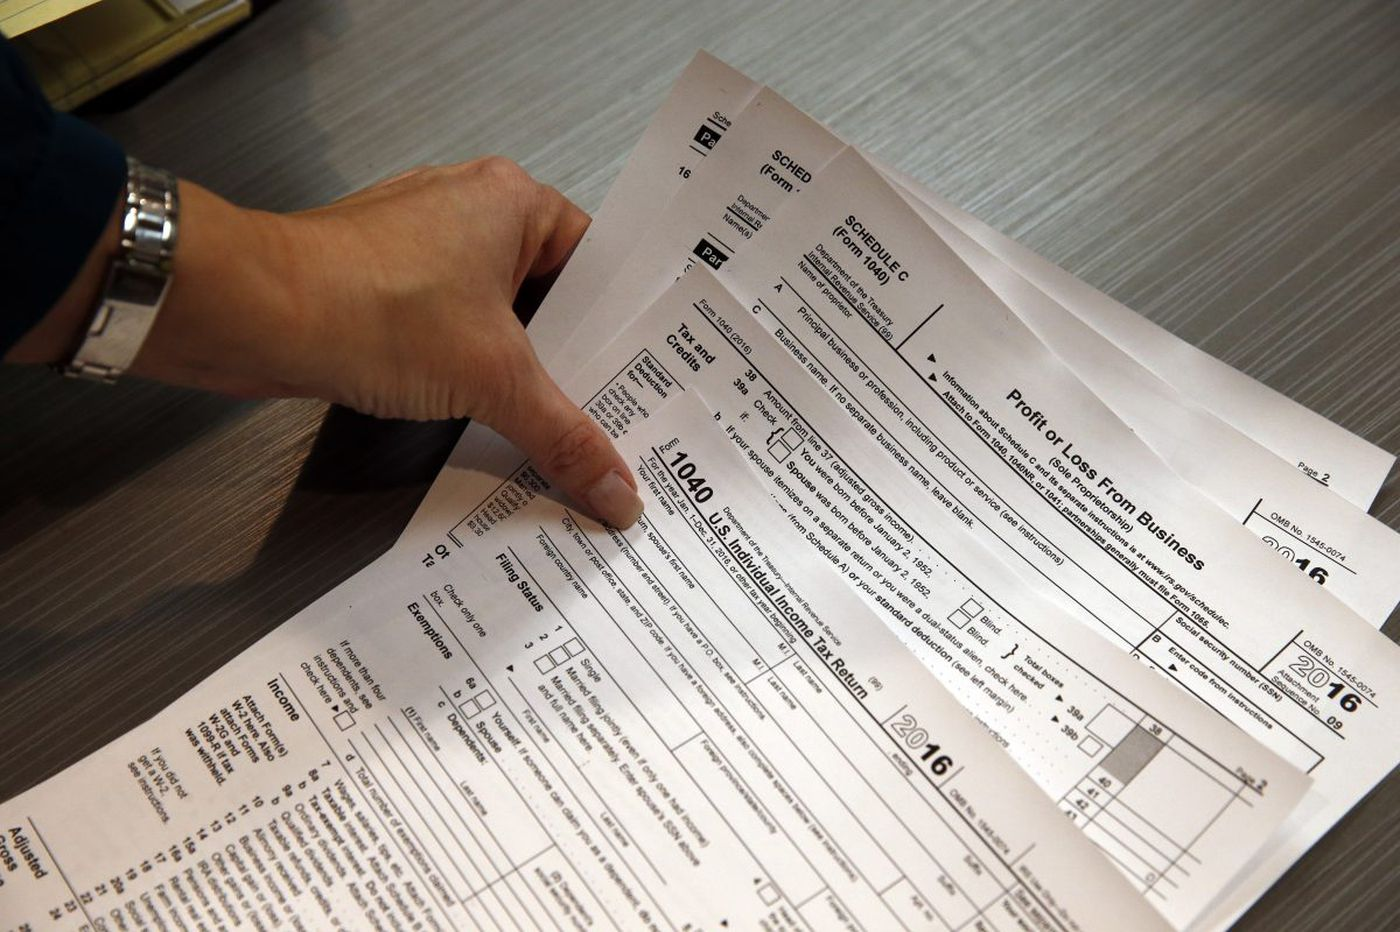 New tax guidelines rely on workers to double-check their paychecks